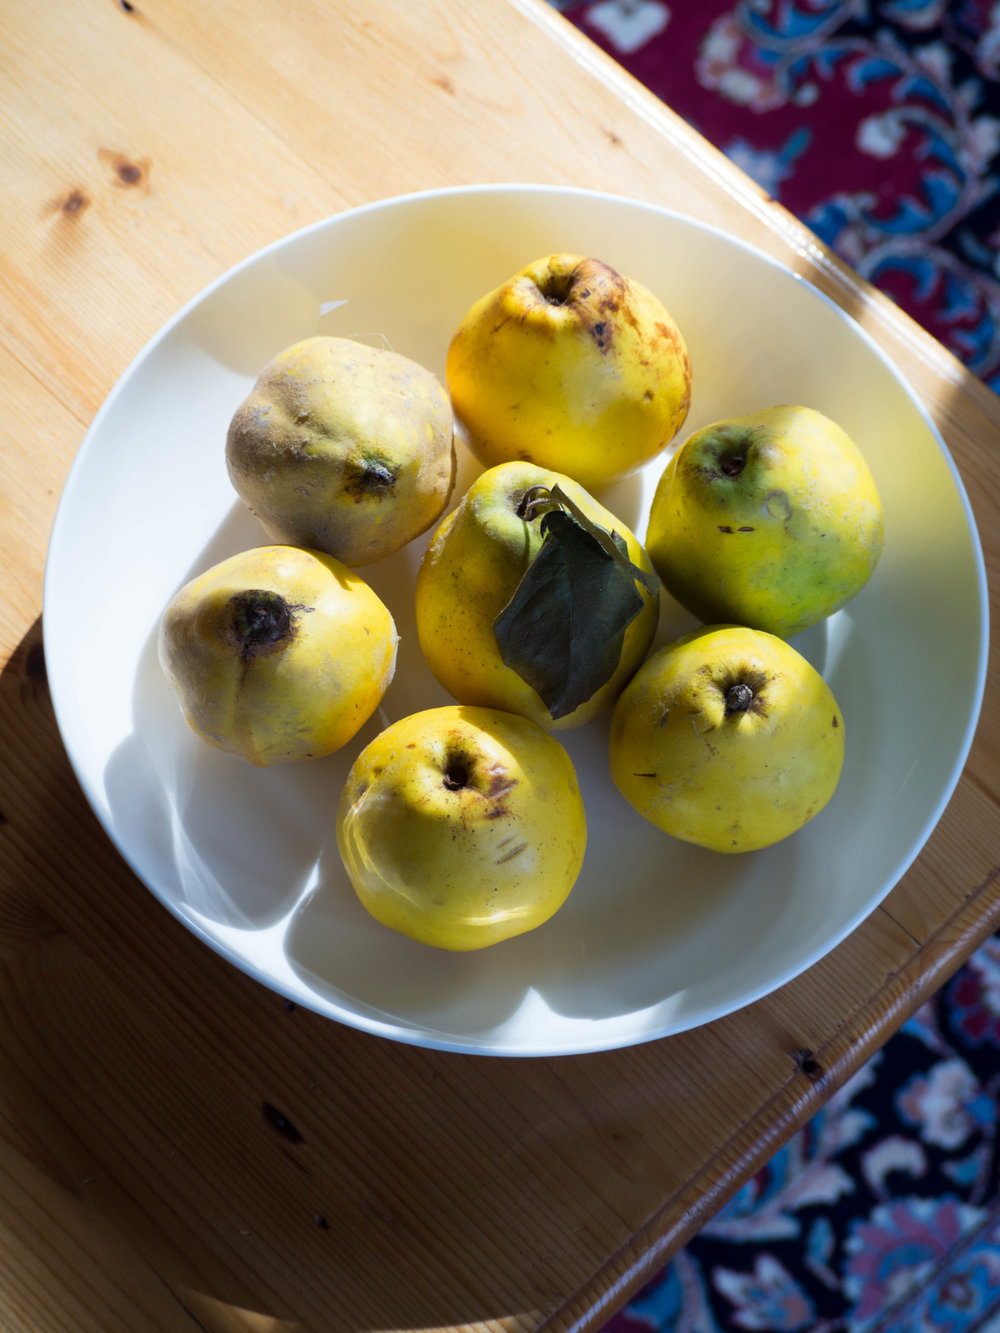 Quinces from the Agrestic Grocer